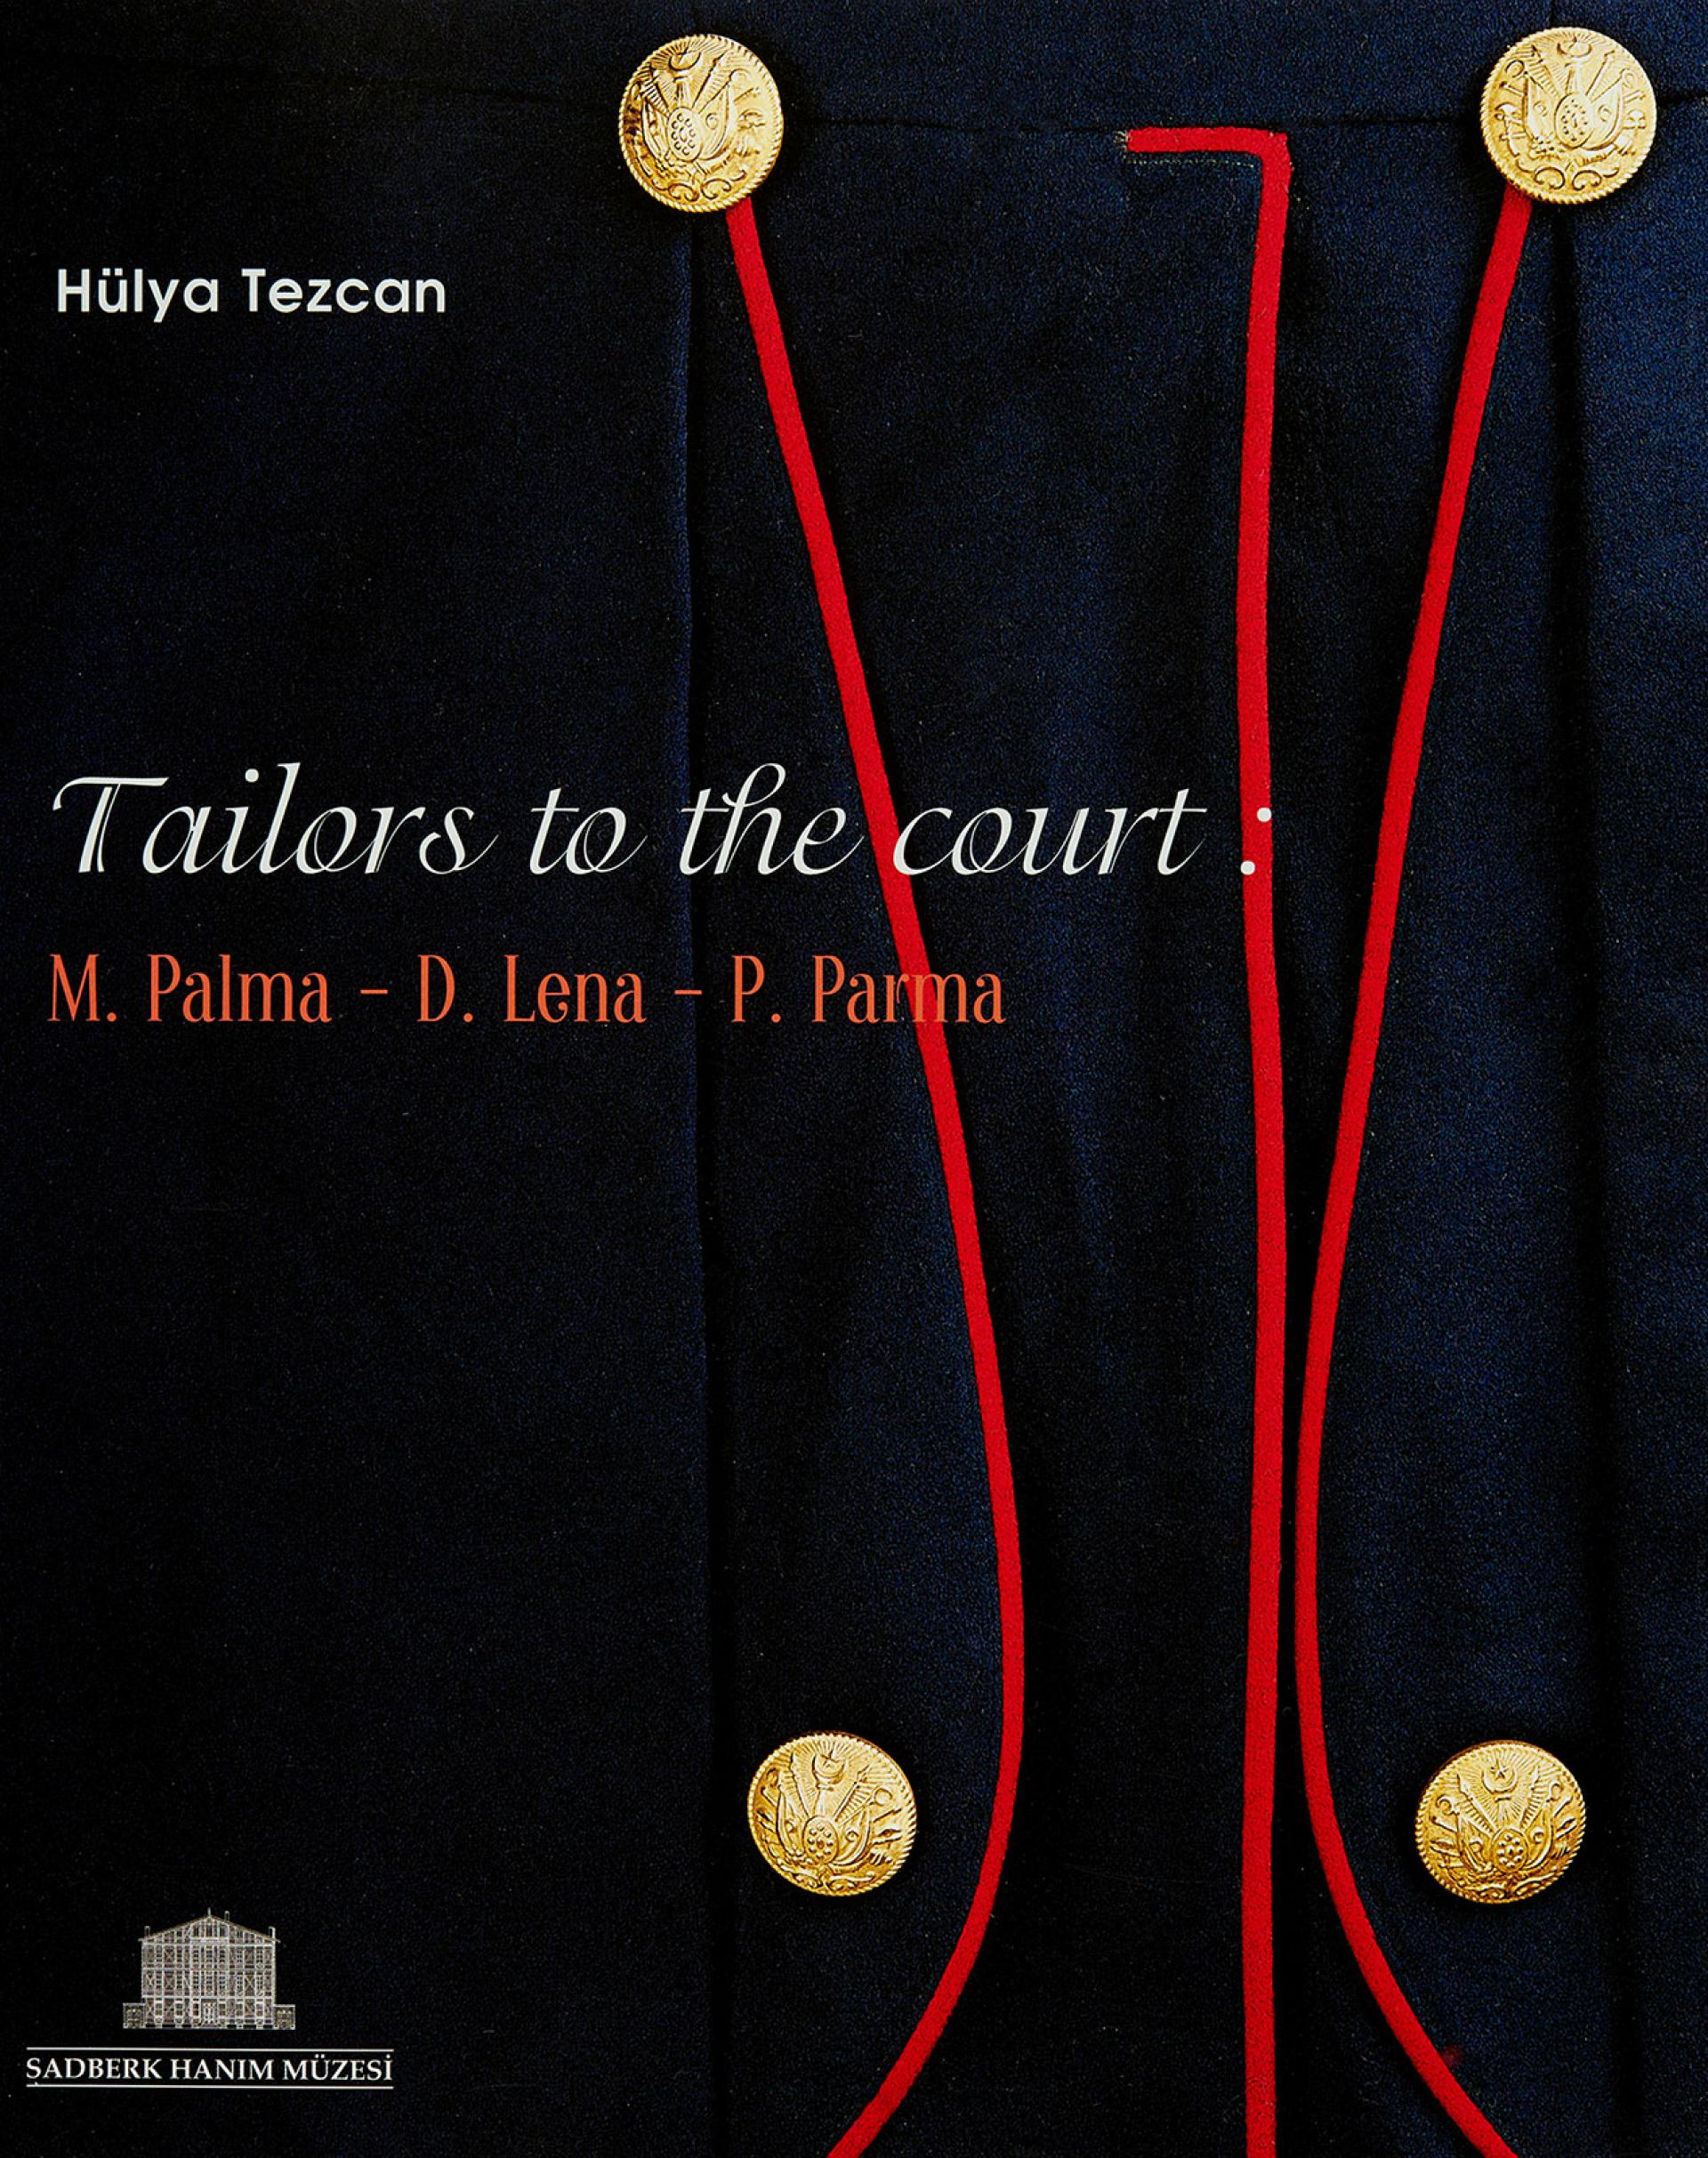 Tailors to the Court: M. Palma - D. Lena - P. Parma - EXHIBITIONS - Sadberk Hanım Museum